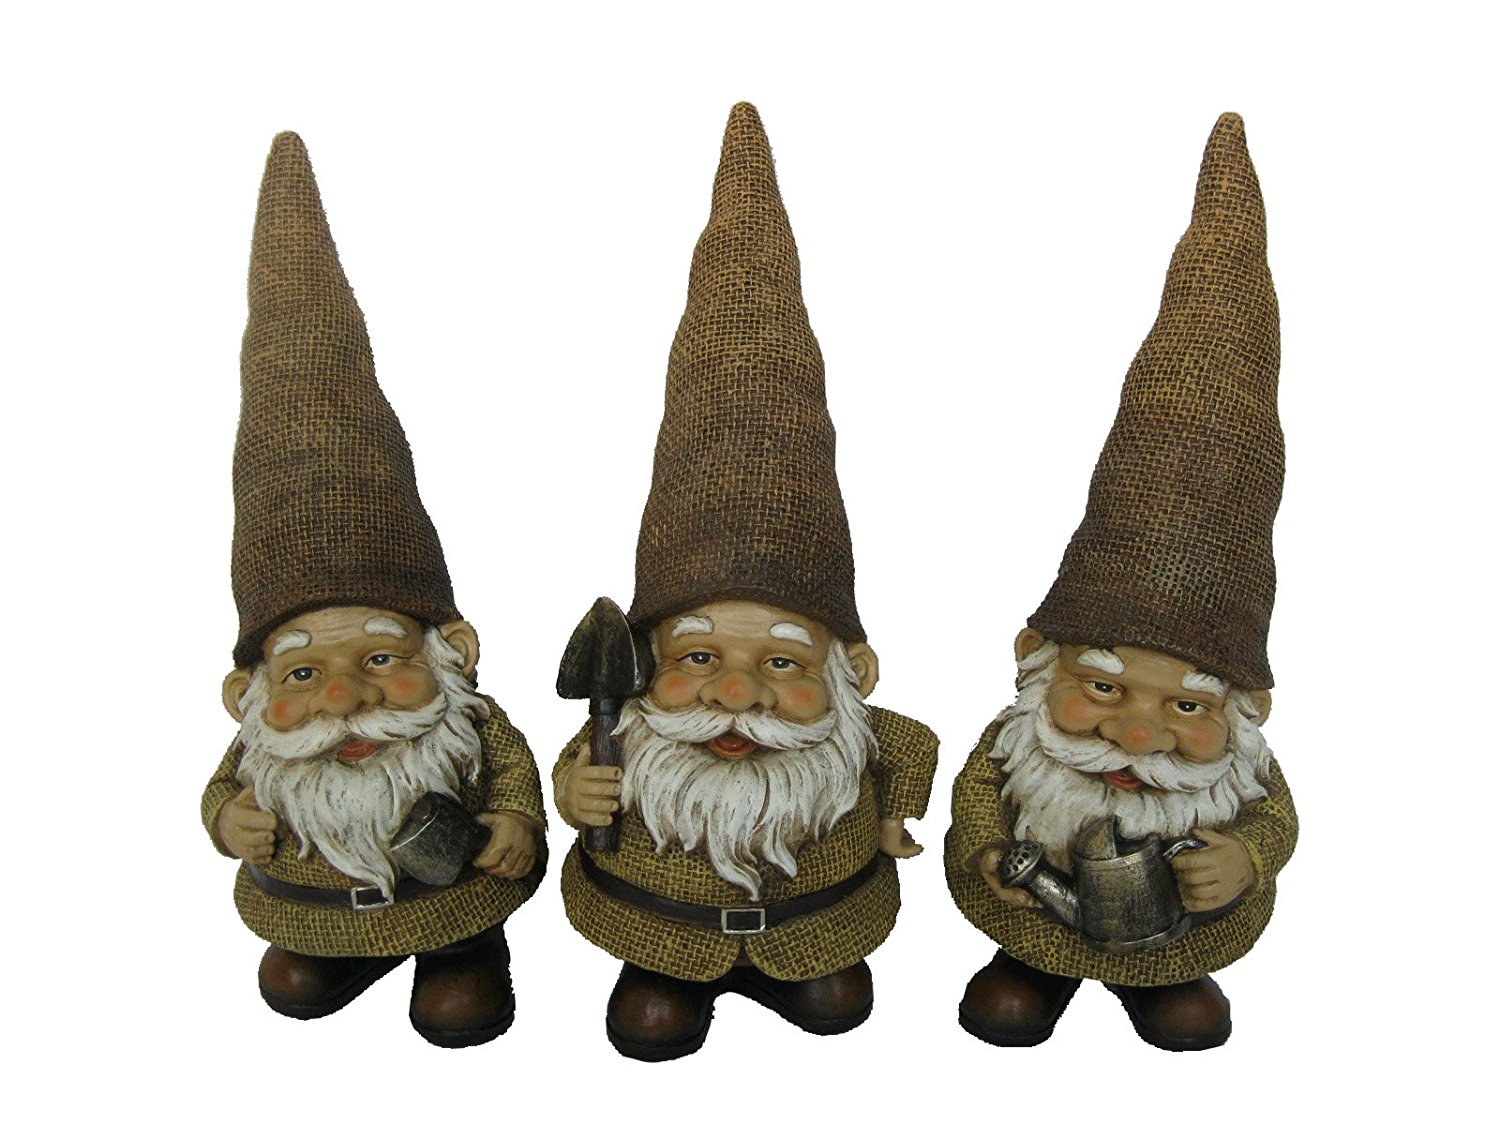 Cheap Painted Gnomes, find Painted Gnomes deals on line at Alibaba.com